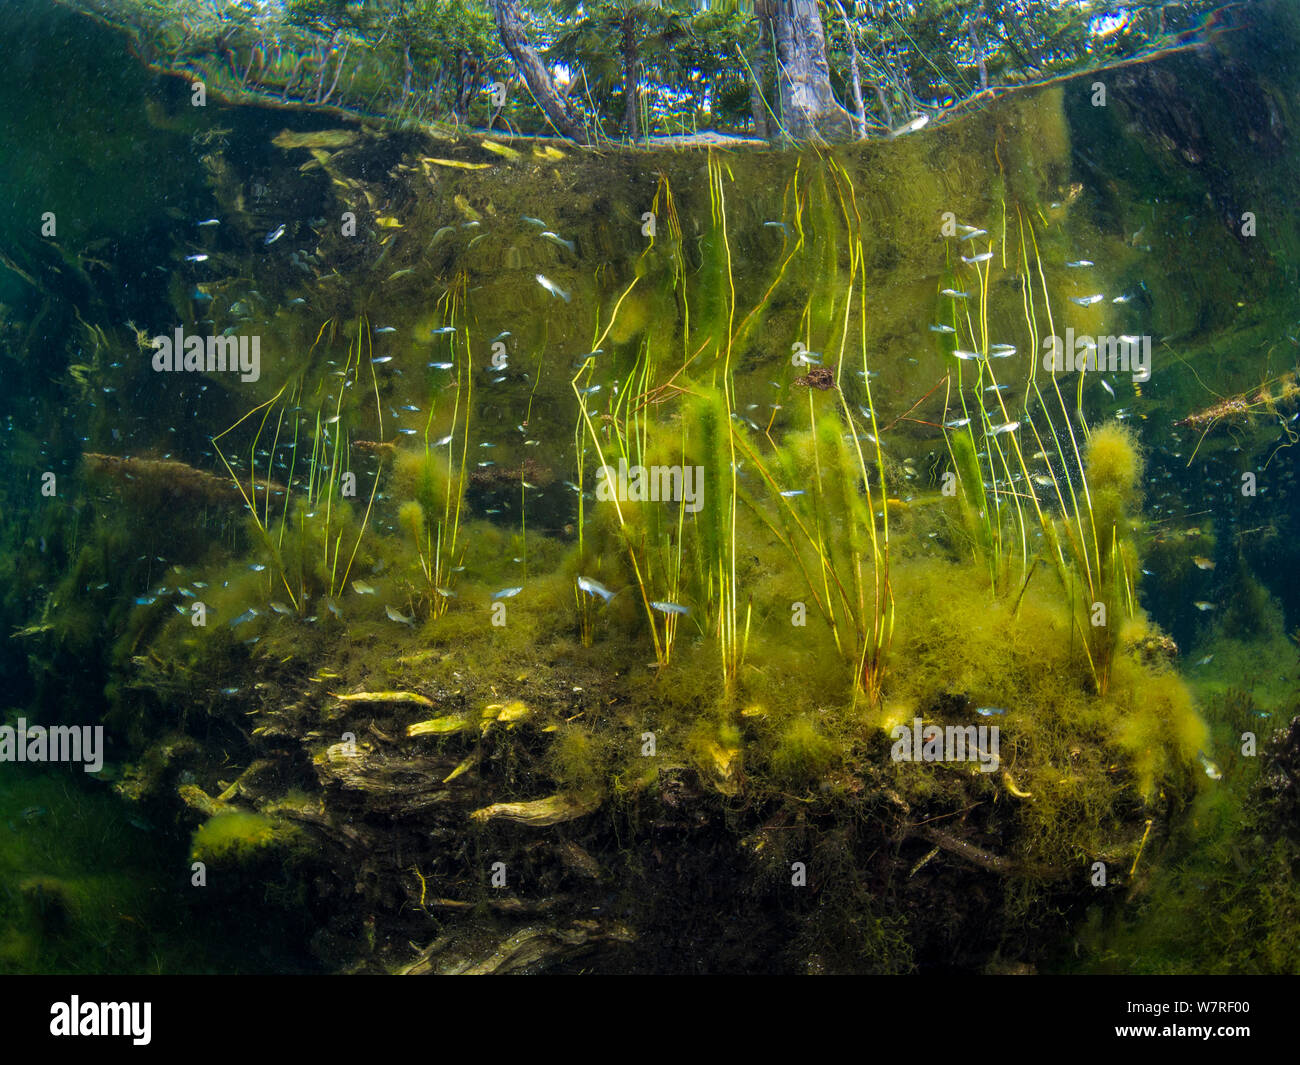 Fish (Poecilia) swimming through plants in a typical scene from a freshwater cenote or sinkhole. Cancun, Yucatan, Mexico. Stock Photo